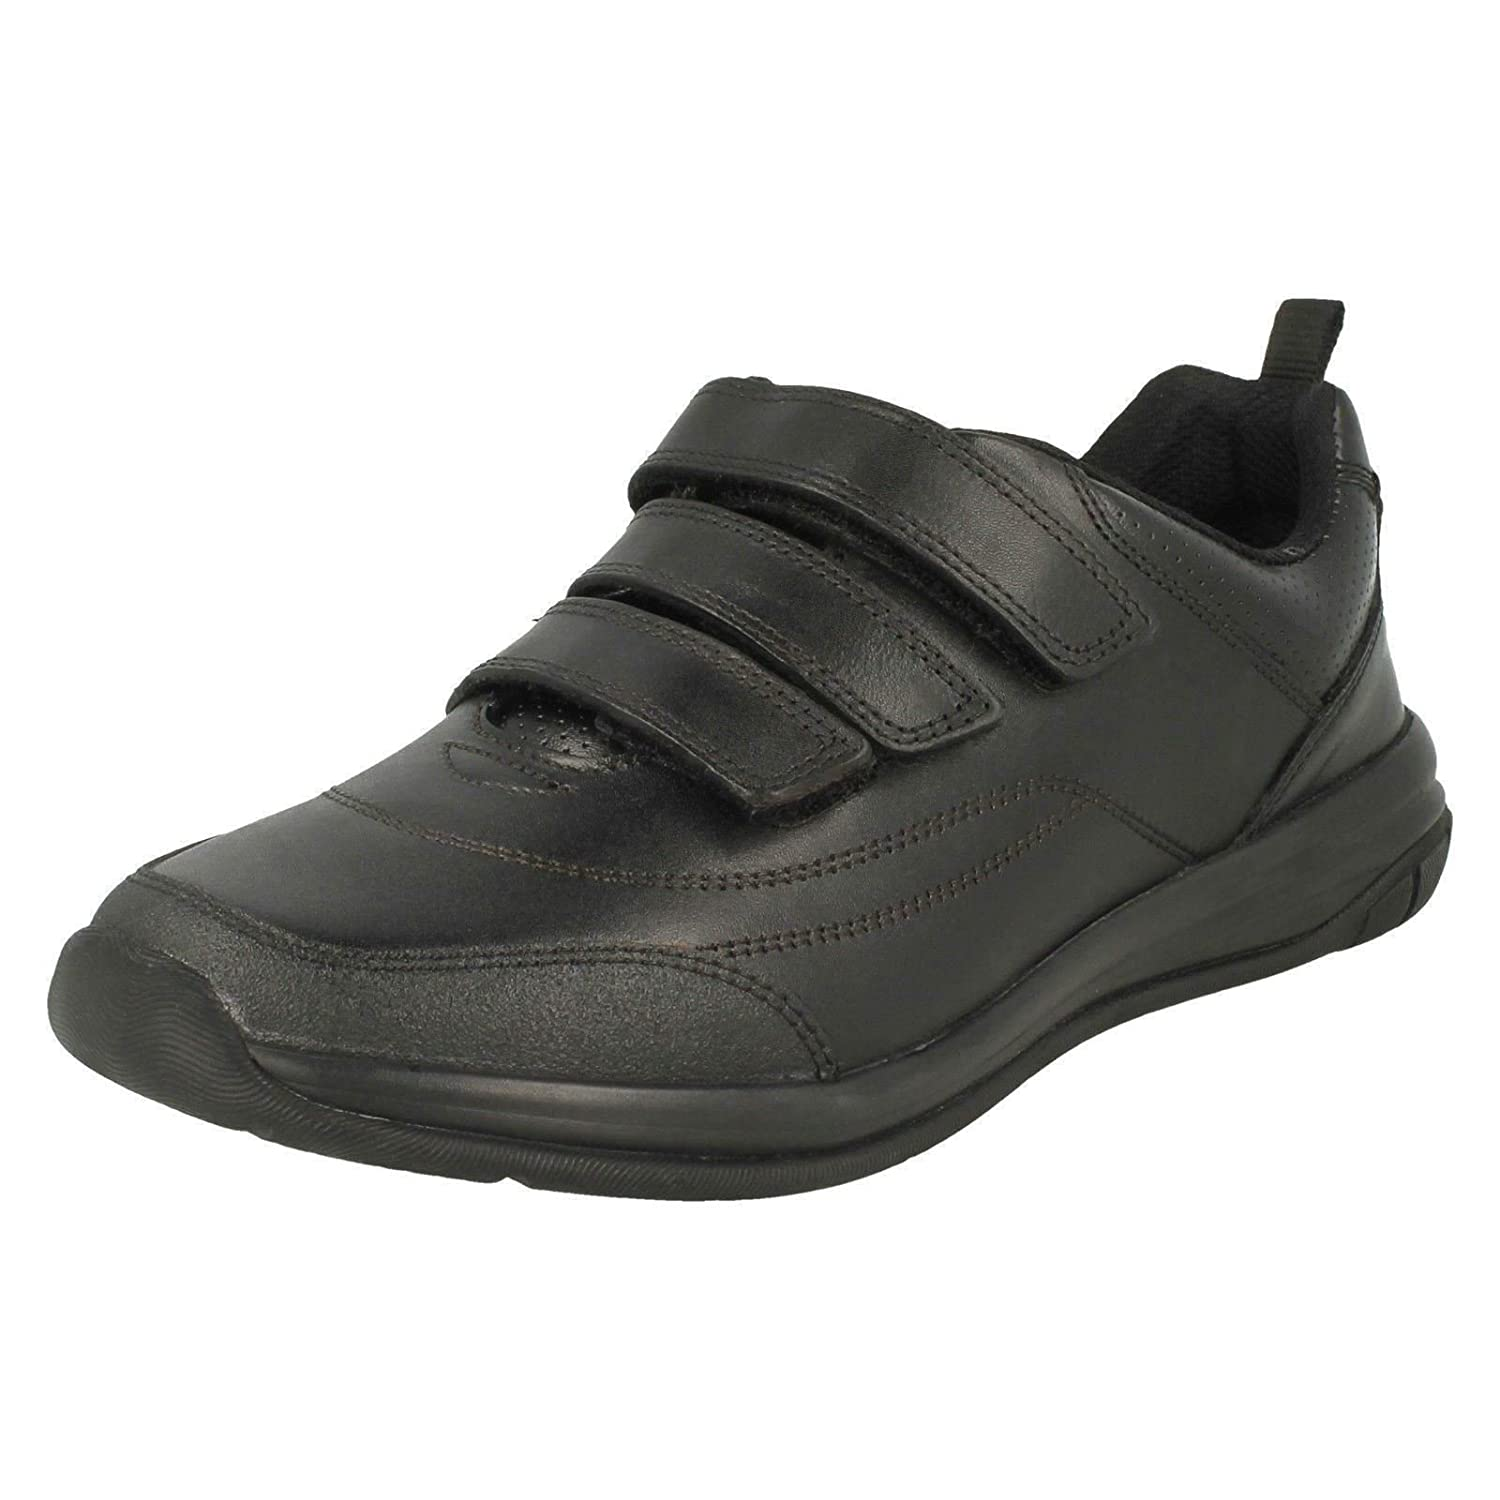 Clarks 3491-06F Hula Thrill Black Leather Kids School Shoes